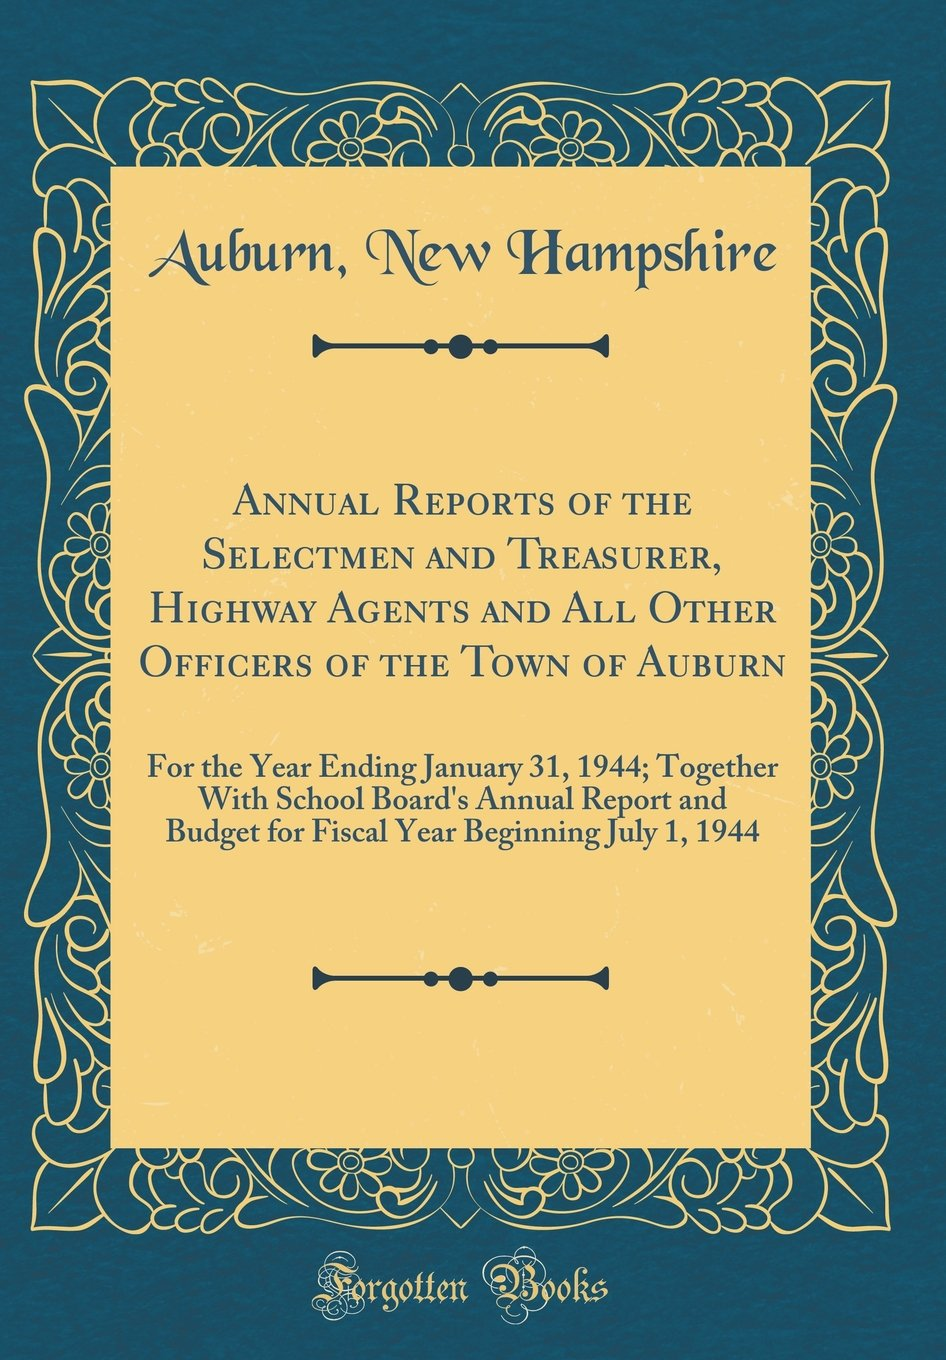 Download Annual Reports of the Selectmen and Treasurer, Highway Agents and All Other Officers of the Town of Auburn: For the Year Ending January 31, 1944; ... Budget for Fiscal Year Beginning July 1, 1944 PDF